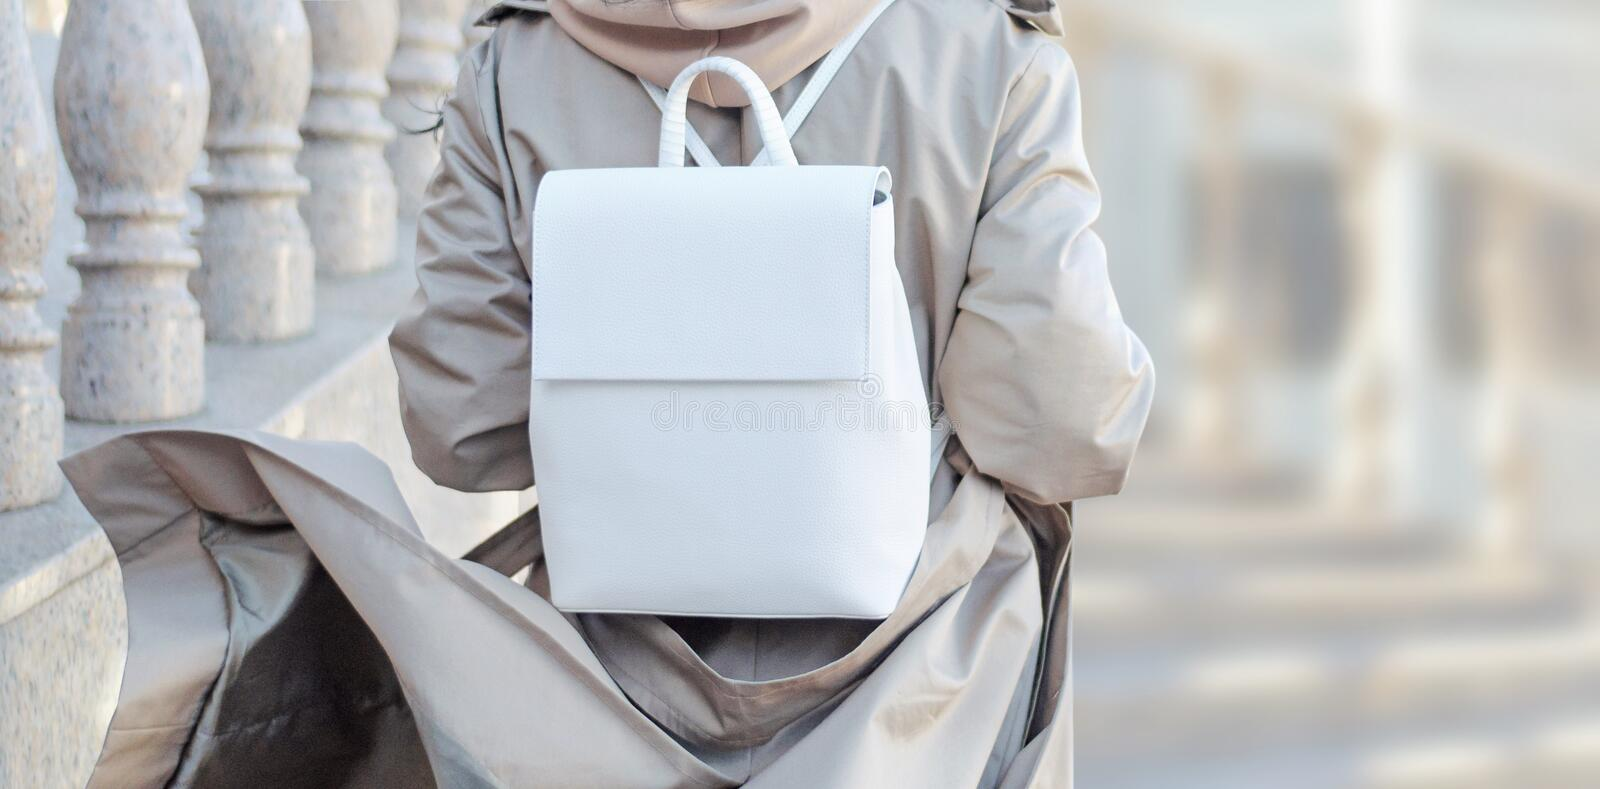 Fashionable bag close-up in female hands.Girl walks in the city outdoors. Stylish modern and feminine image, style. stock image